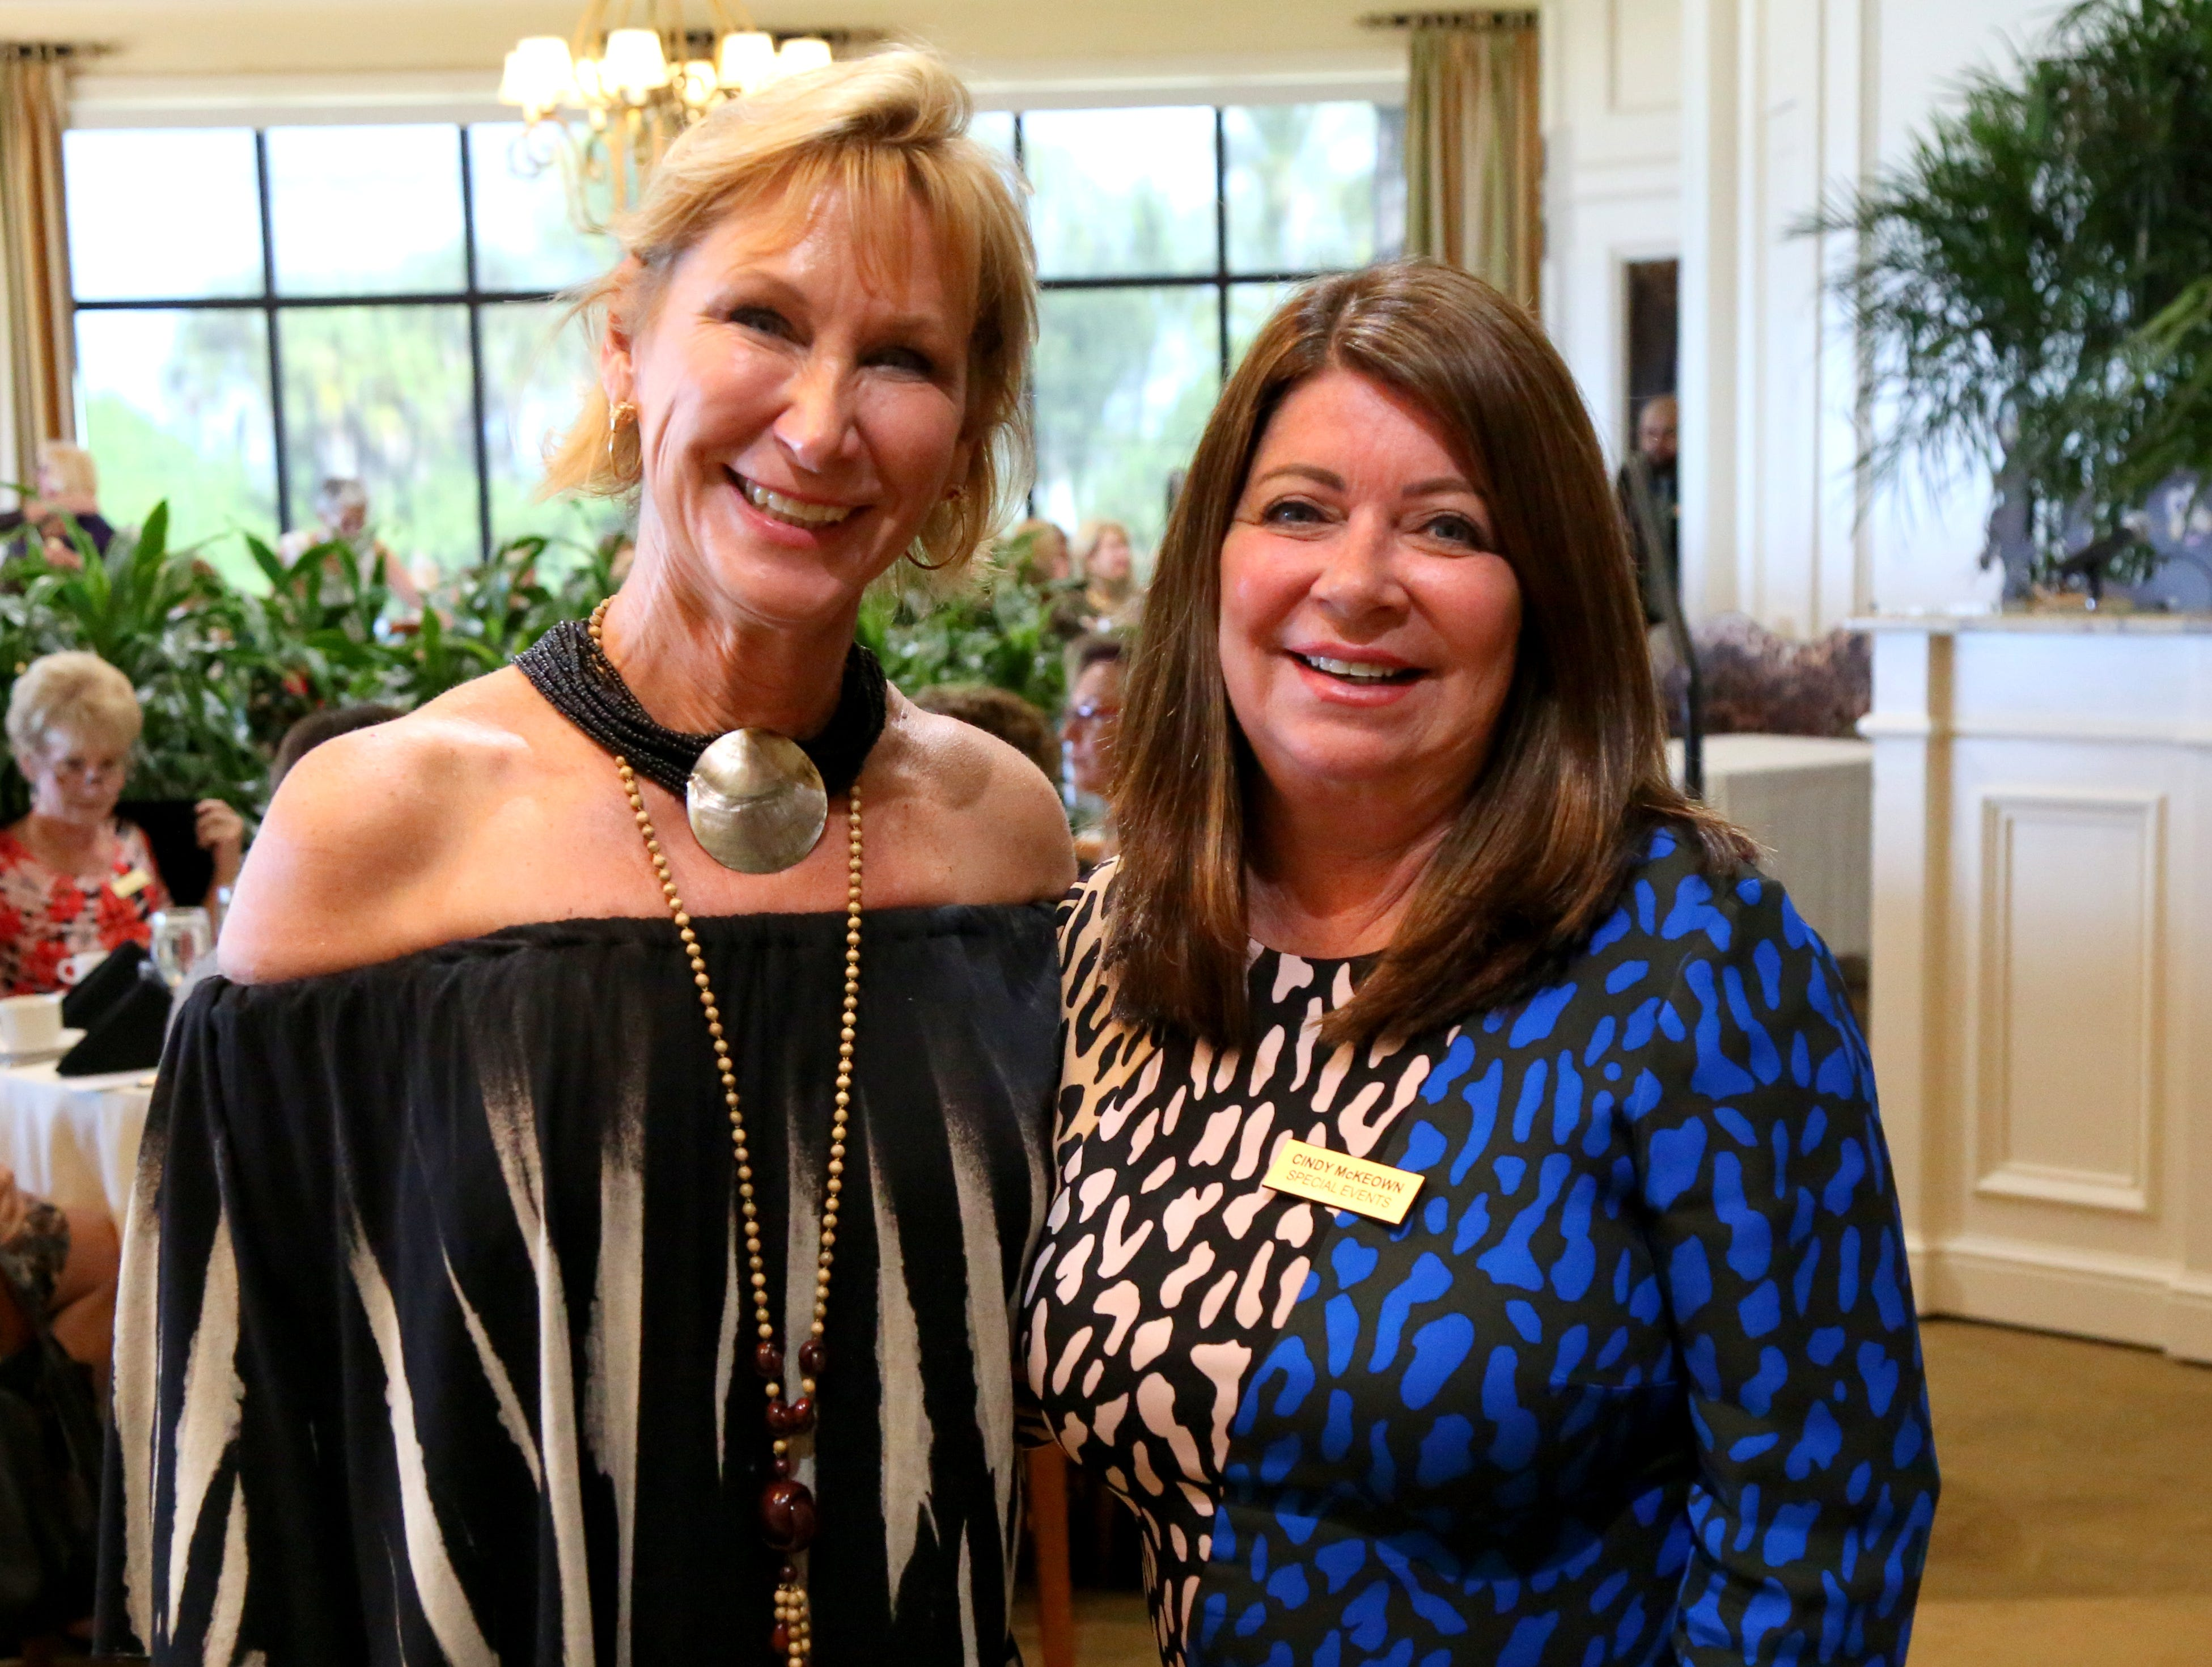 Special event organizers Michele Senda and Cindy McKeown organized the 2018 Welcome Back Luncheon & Fashion Show.